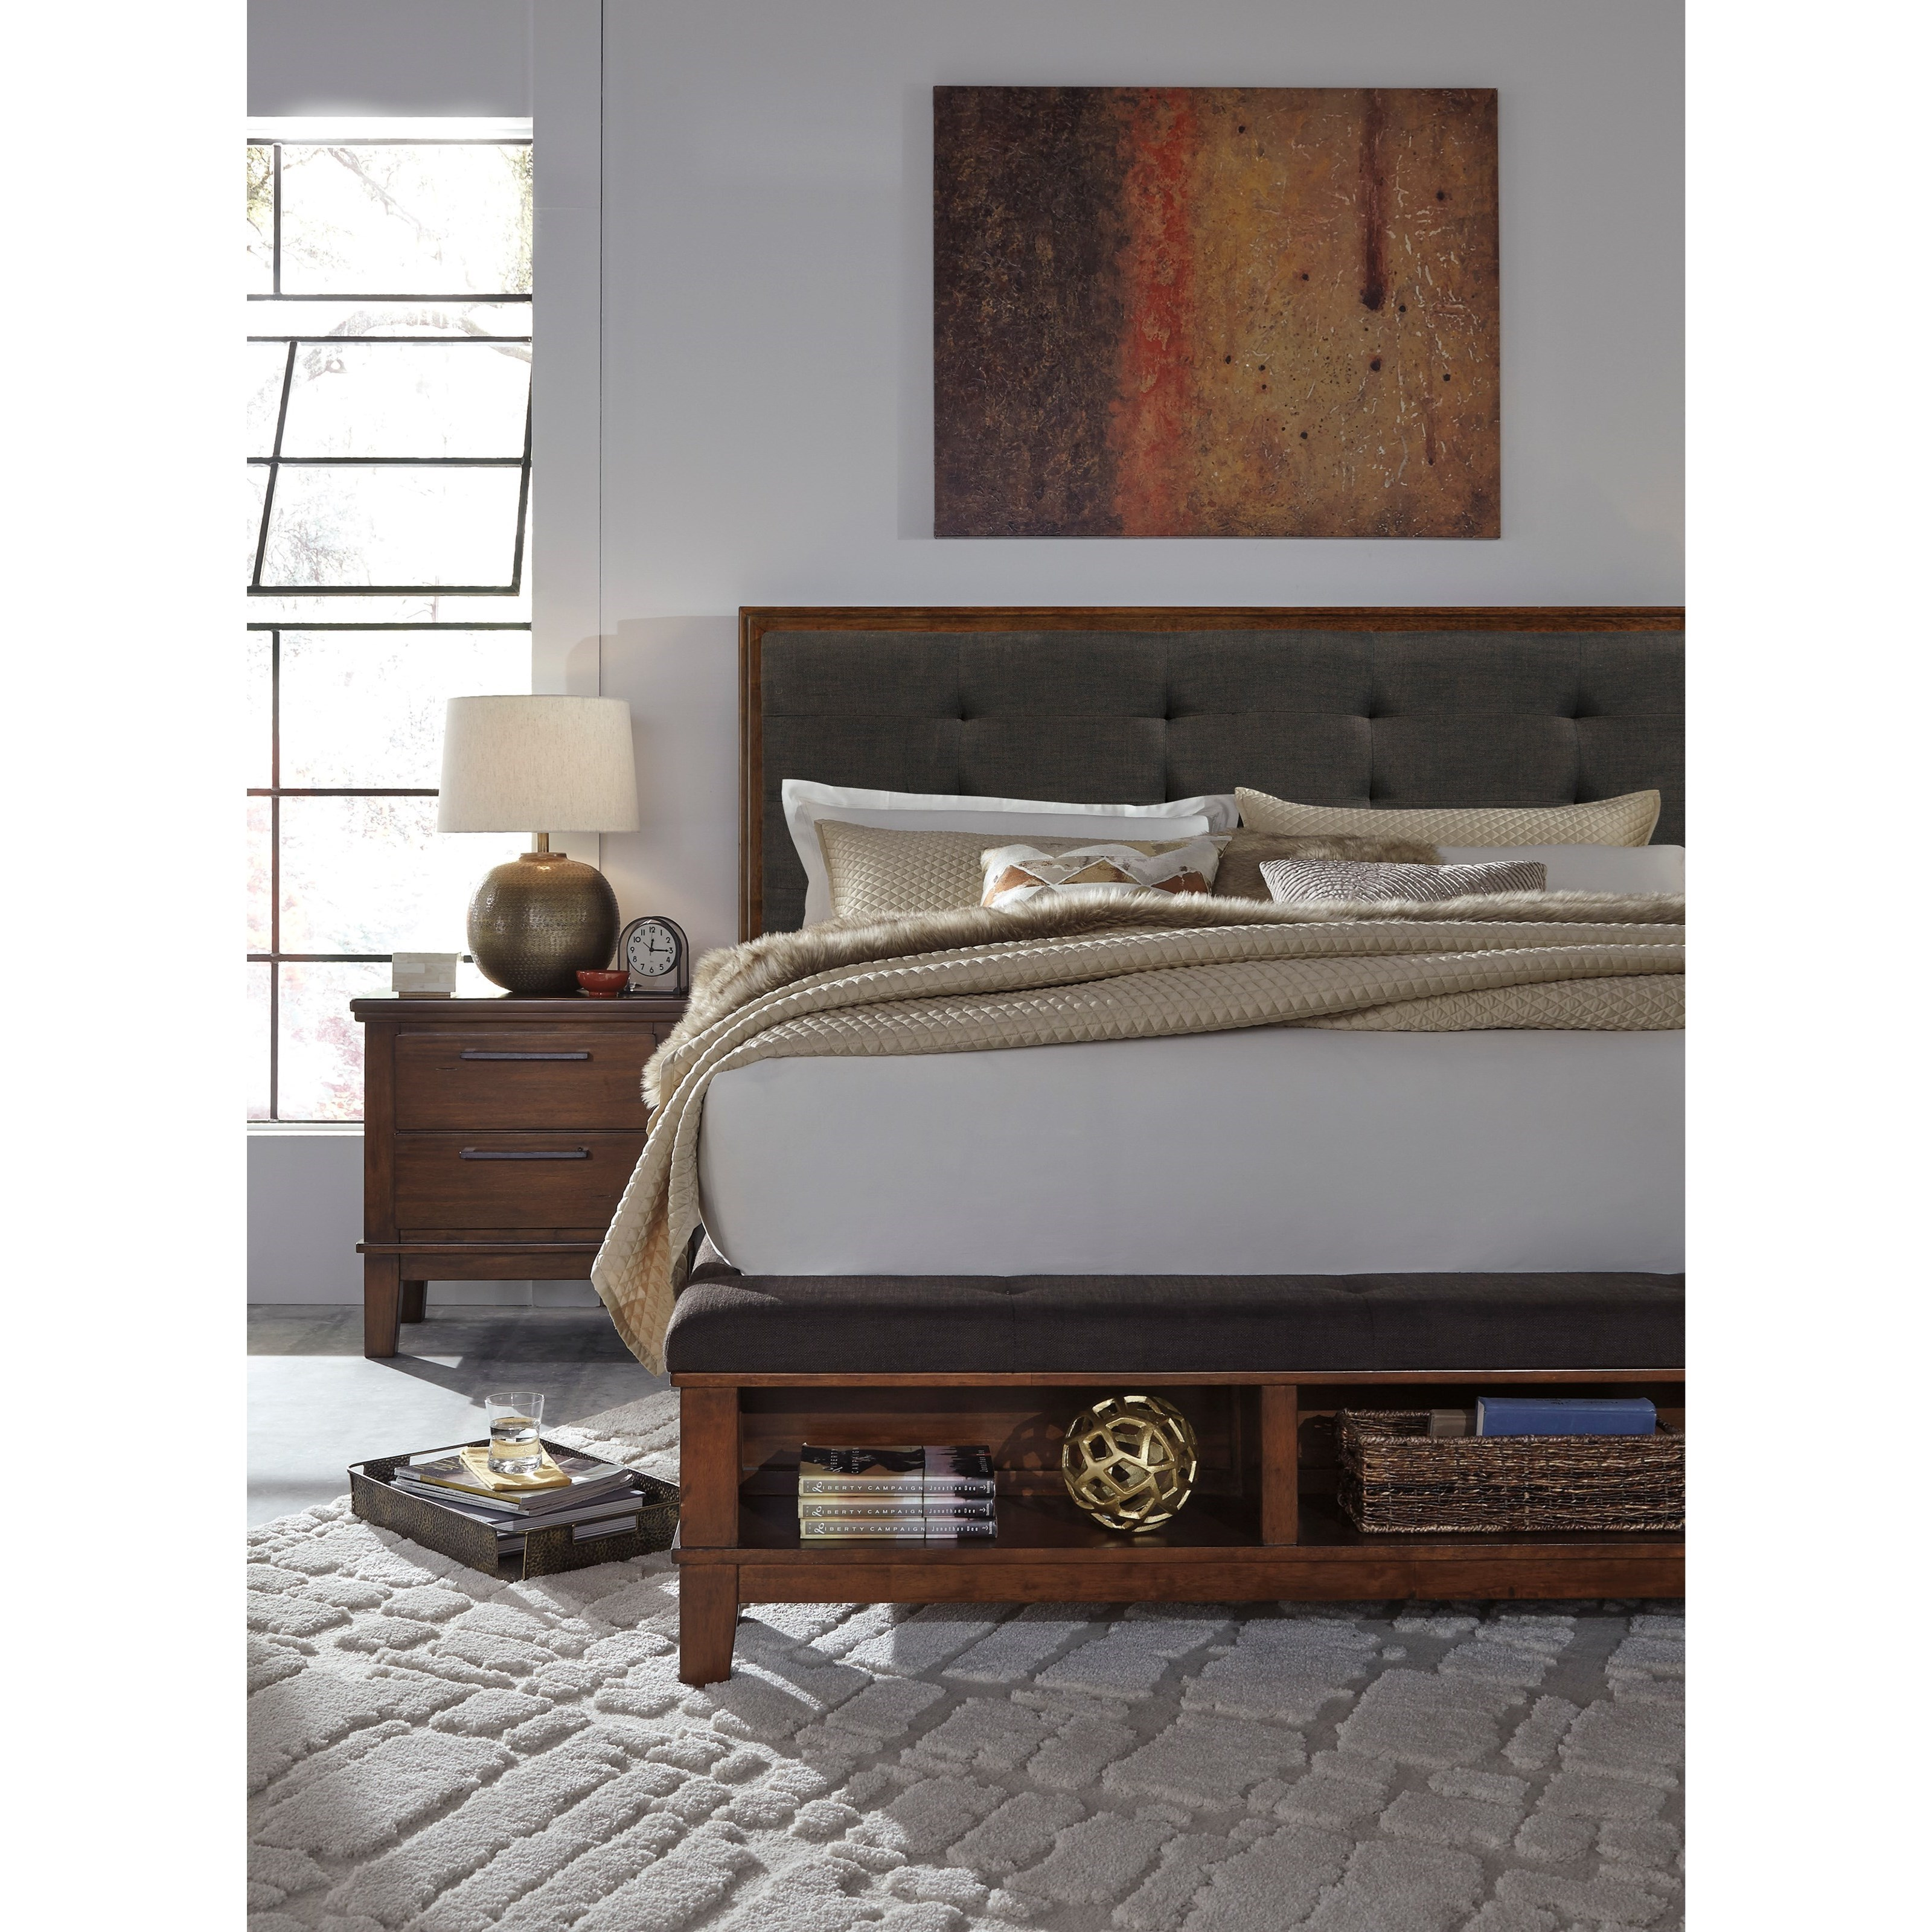 Signature Design By Ashley Ralene Queen Upholstered Bed With Bench Storage Footboard Royal Furniture Upholstered Beds